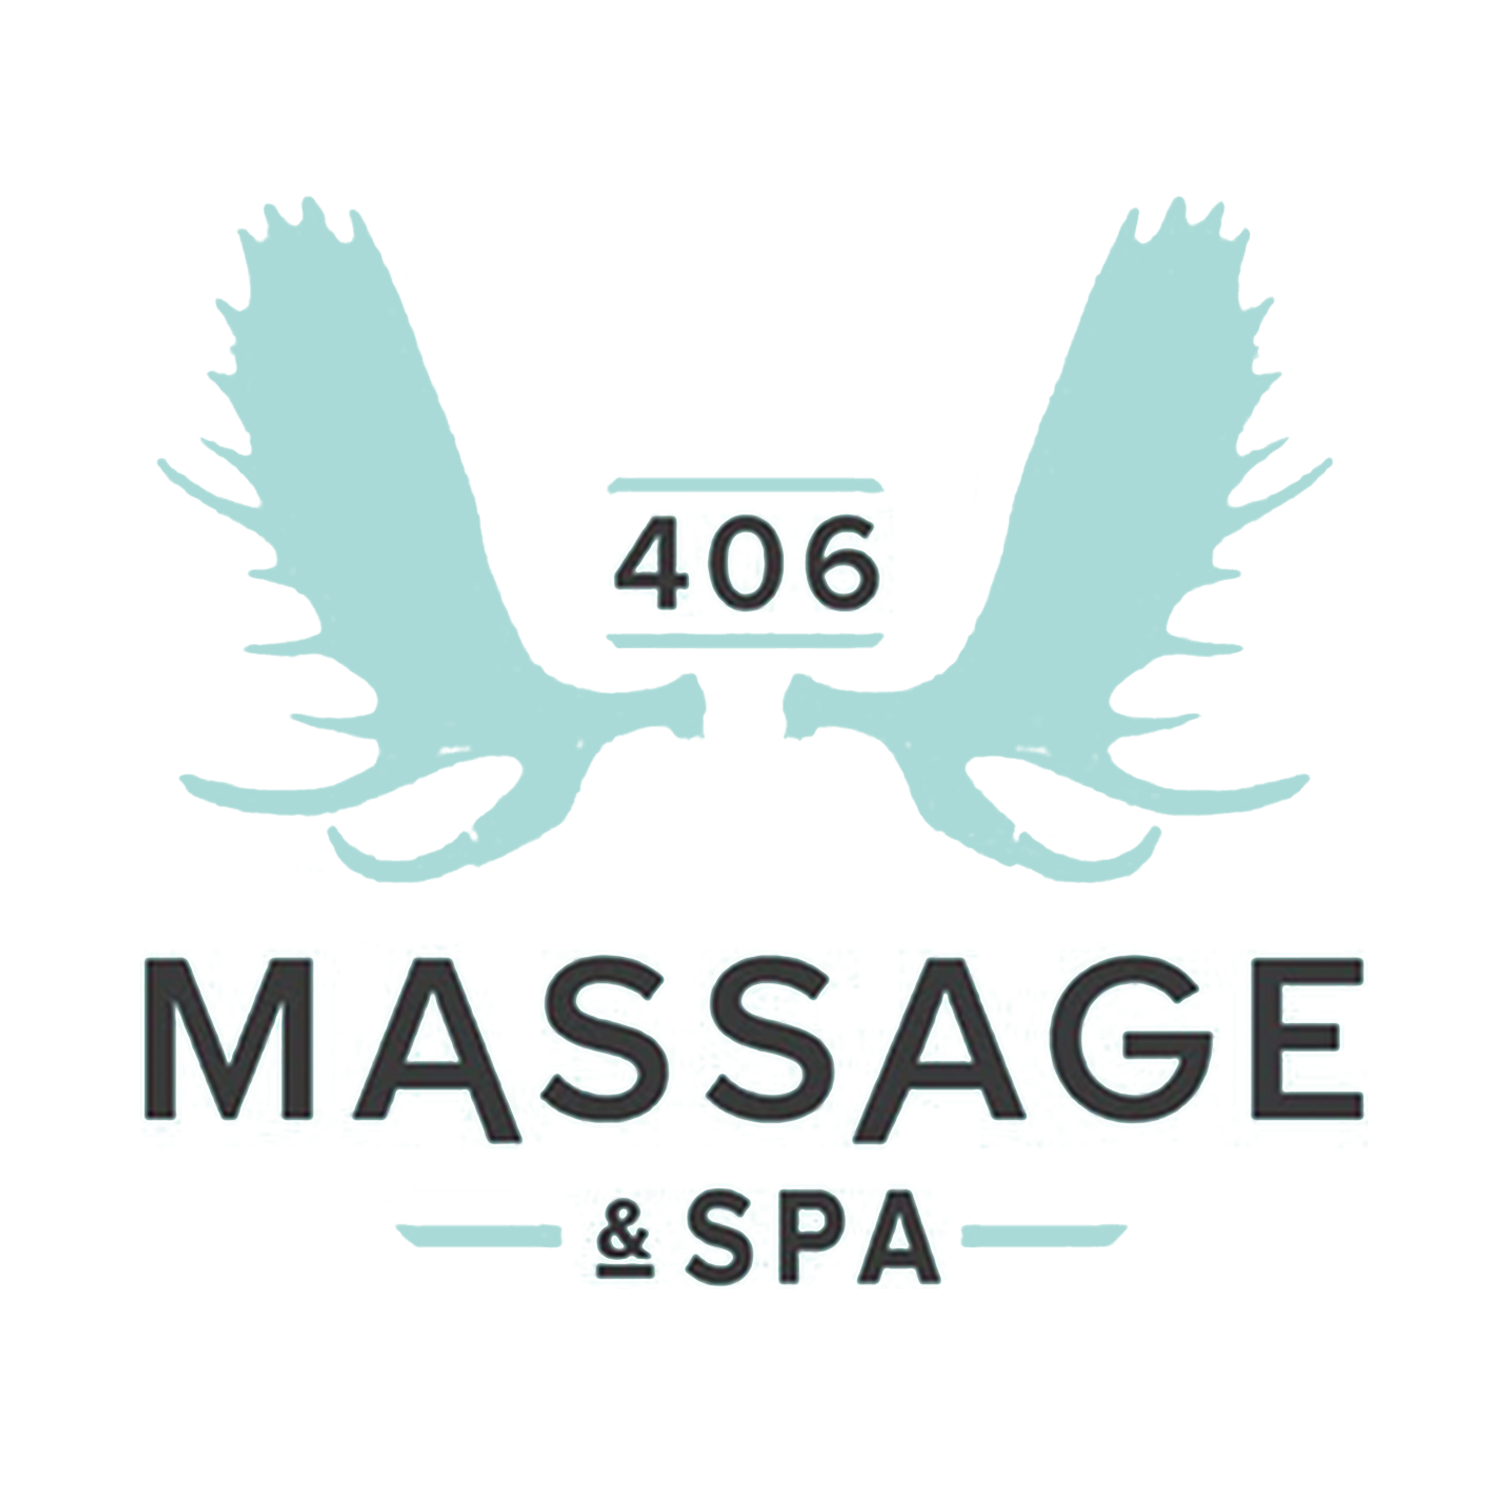 406 Massage & Spa